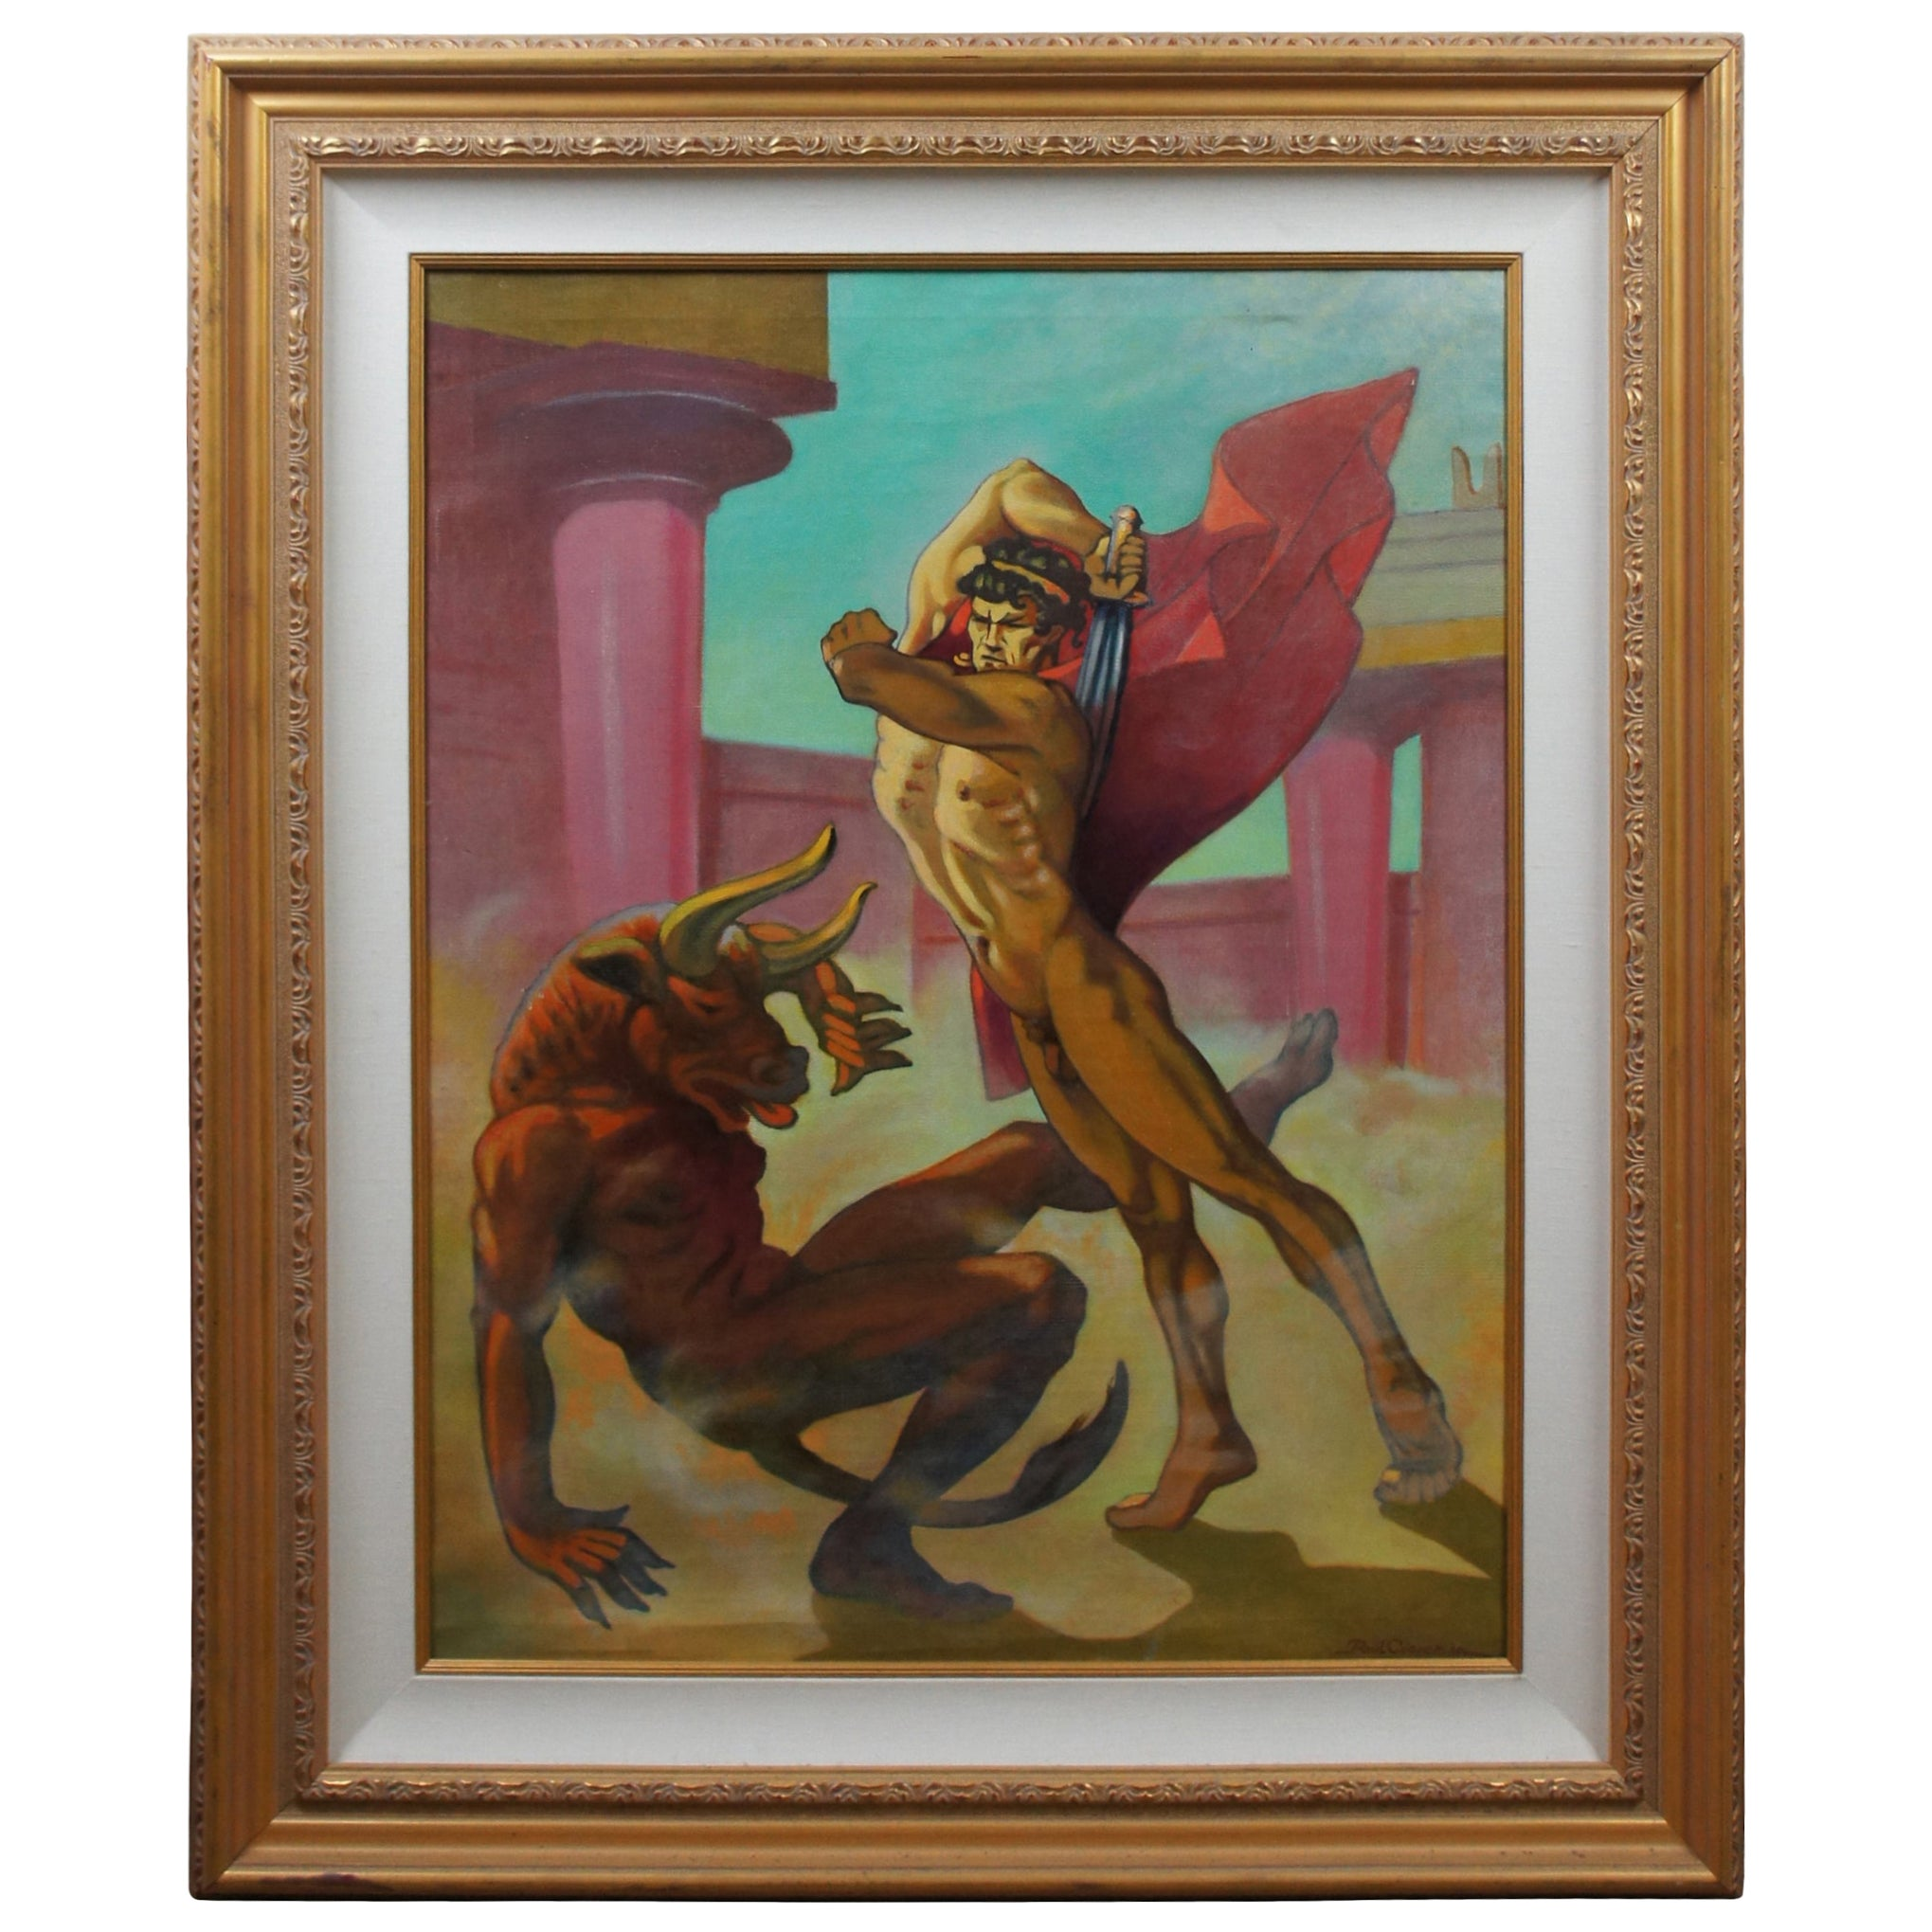 1950s Oil on Canvas Nude Painting by Mark Mohler | Chairish